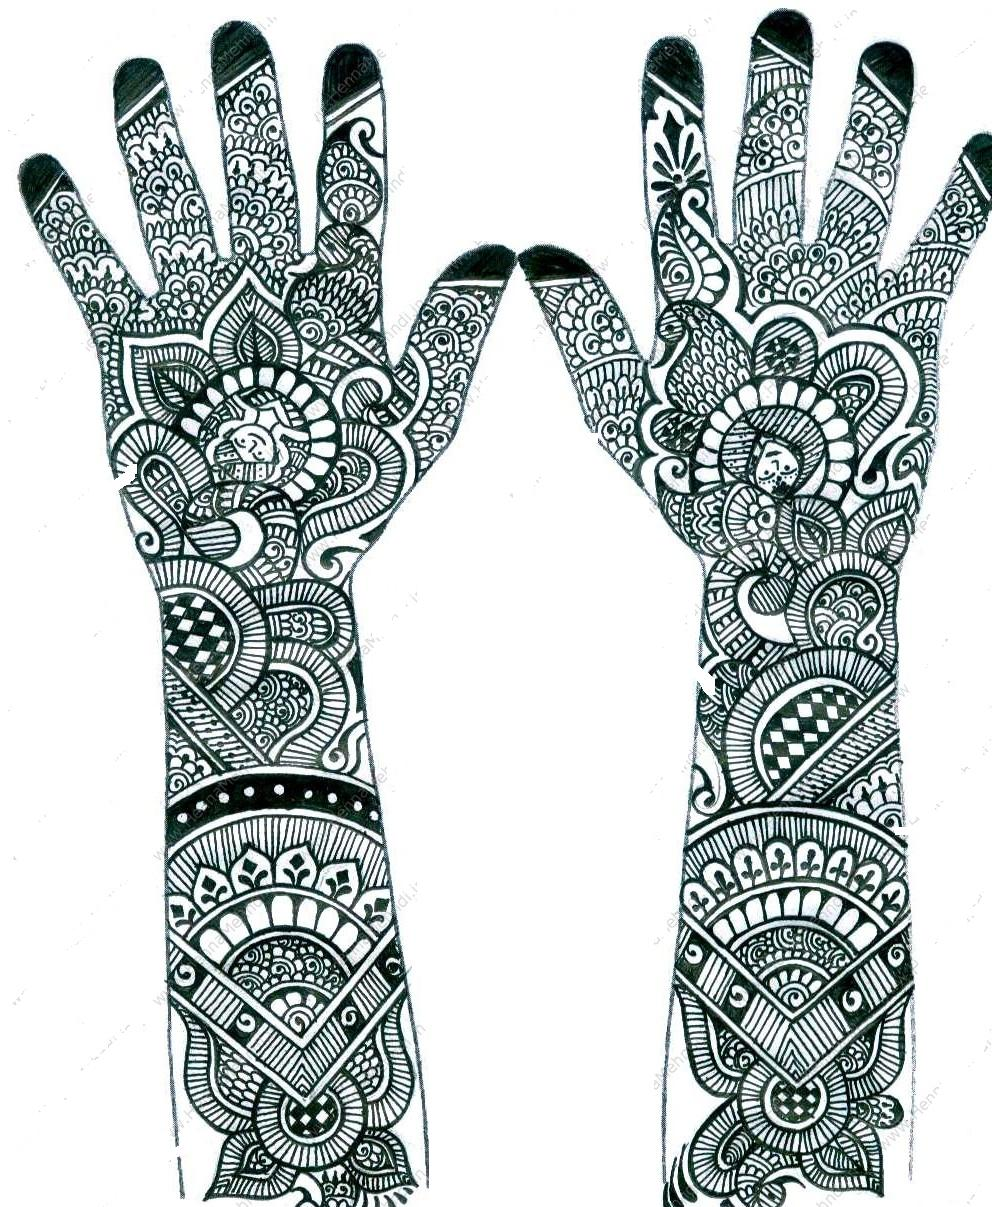 18 Fashion Henna Mehndi Design Patterns